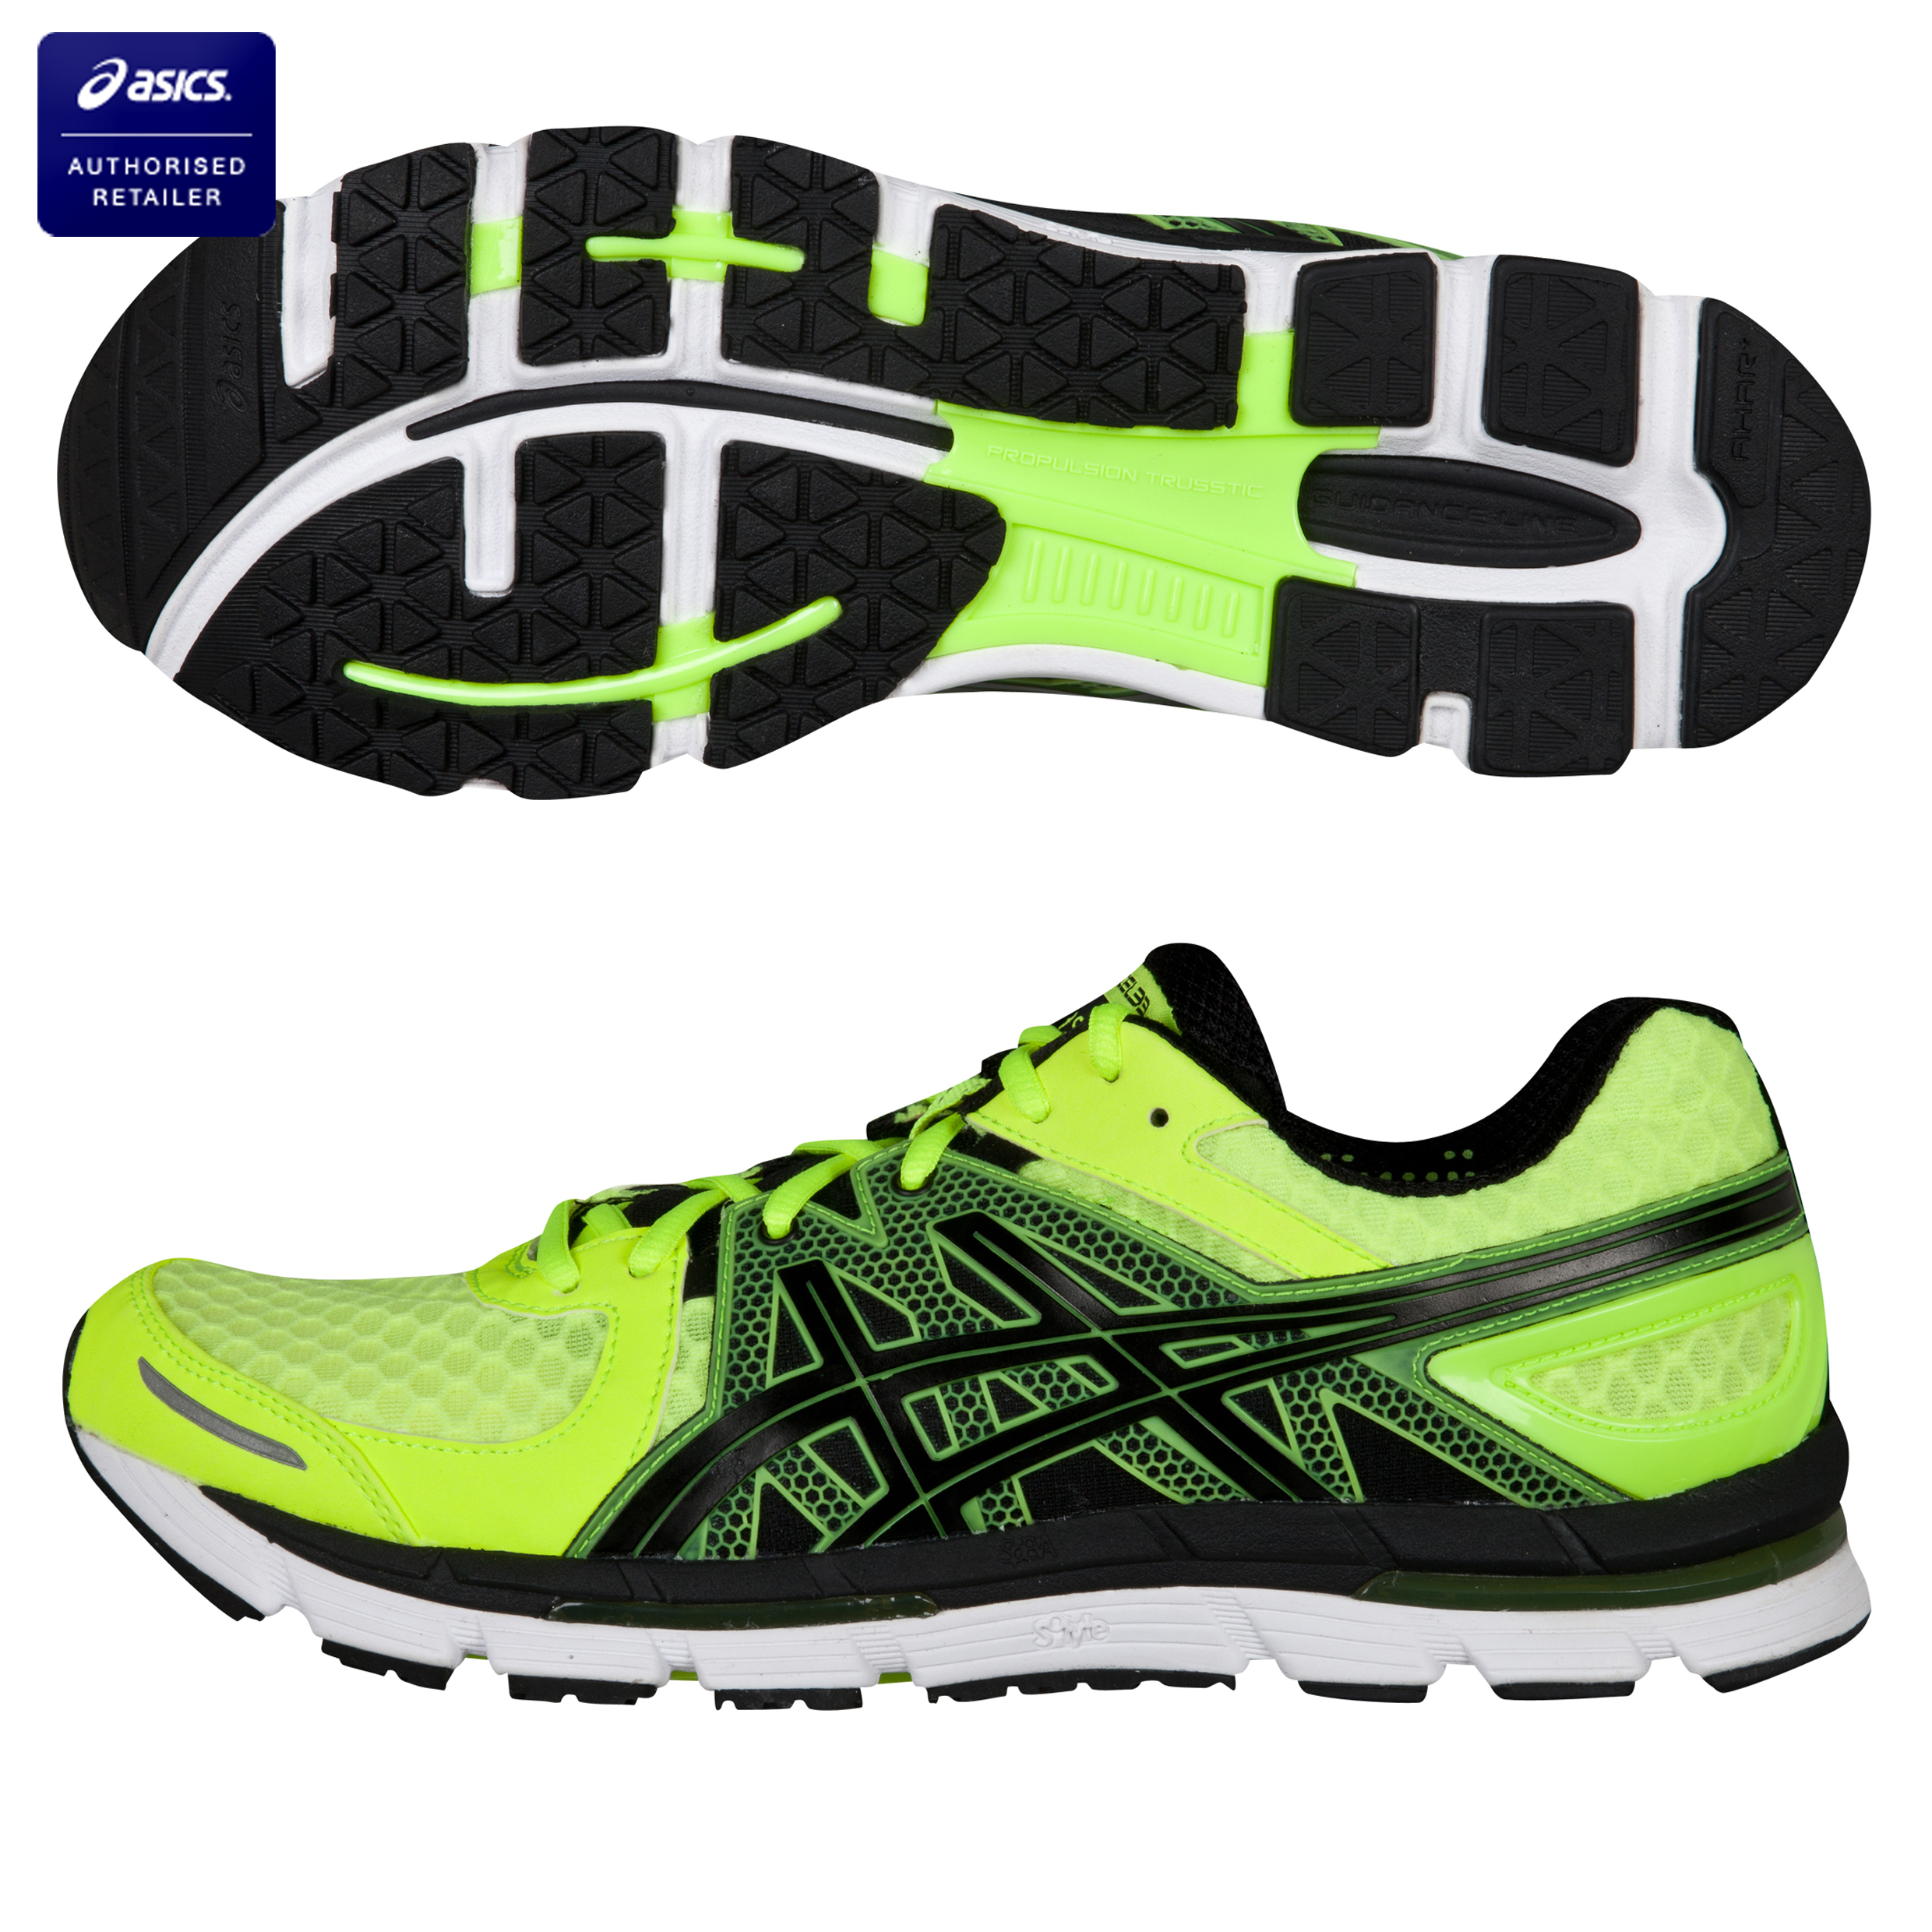 Asics Gel-Excel 33 Trainers - Neon Yellow/Black